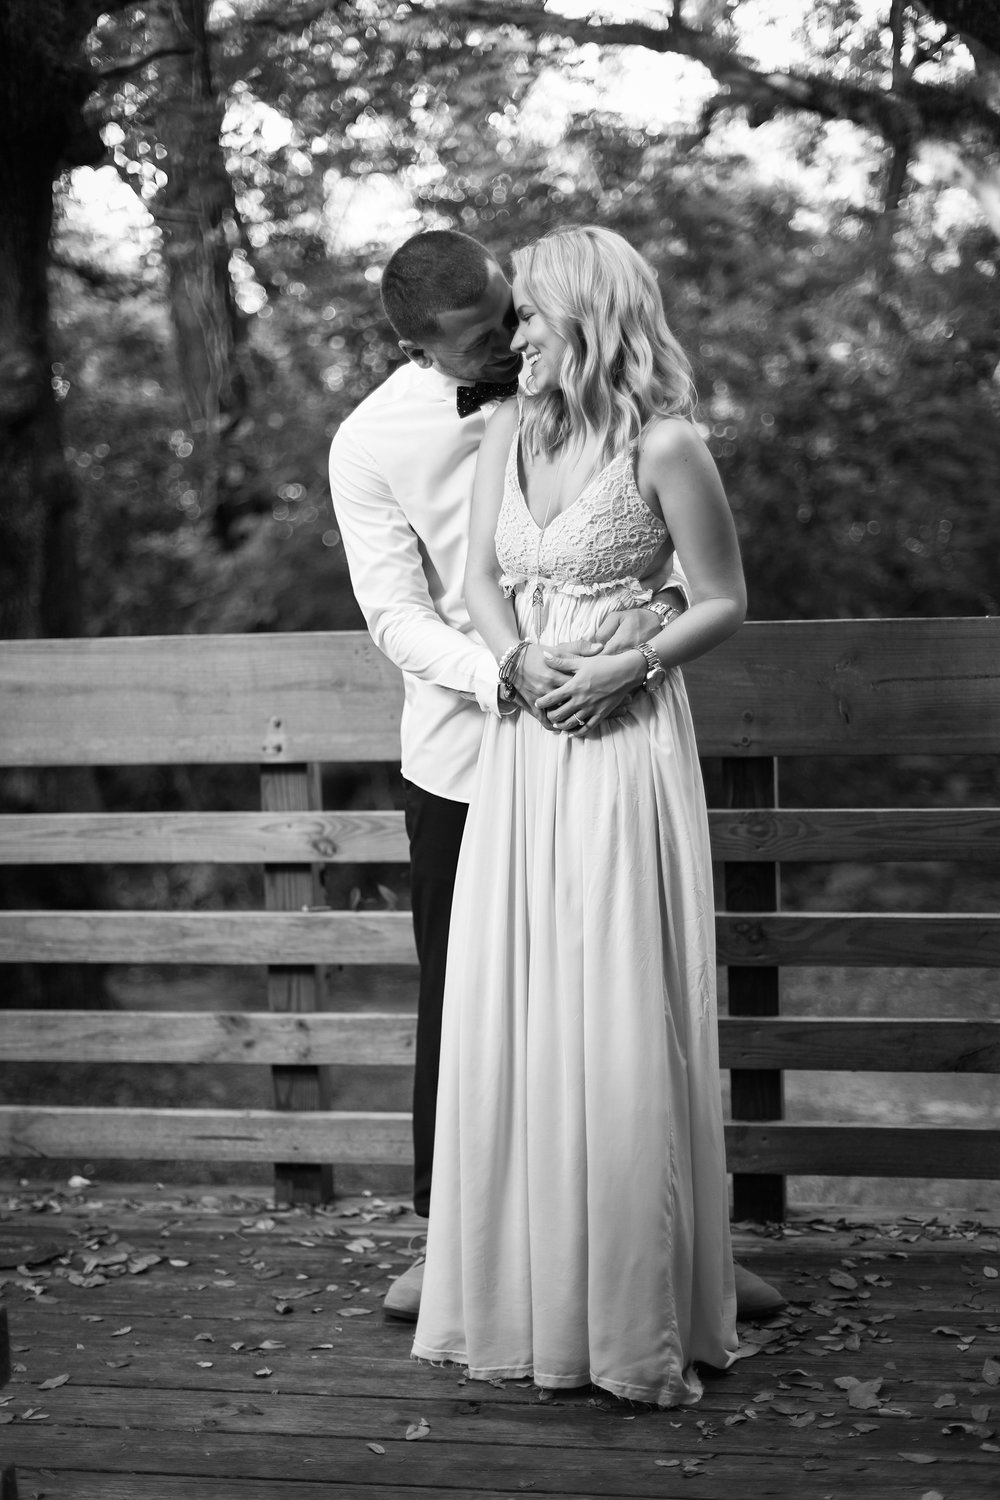 2017_08_17 Jill & Chris ENGAGEMENT-6552-Edit.jpg